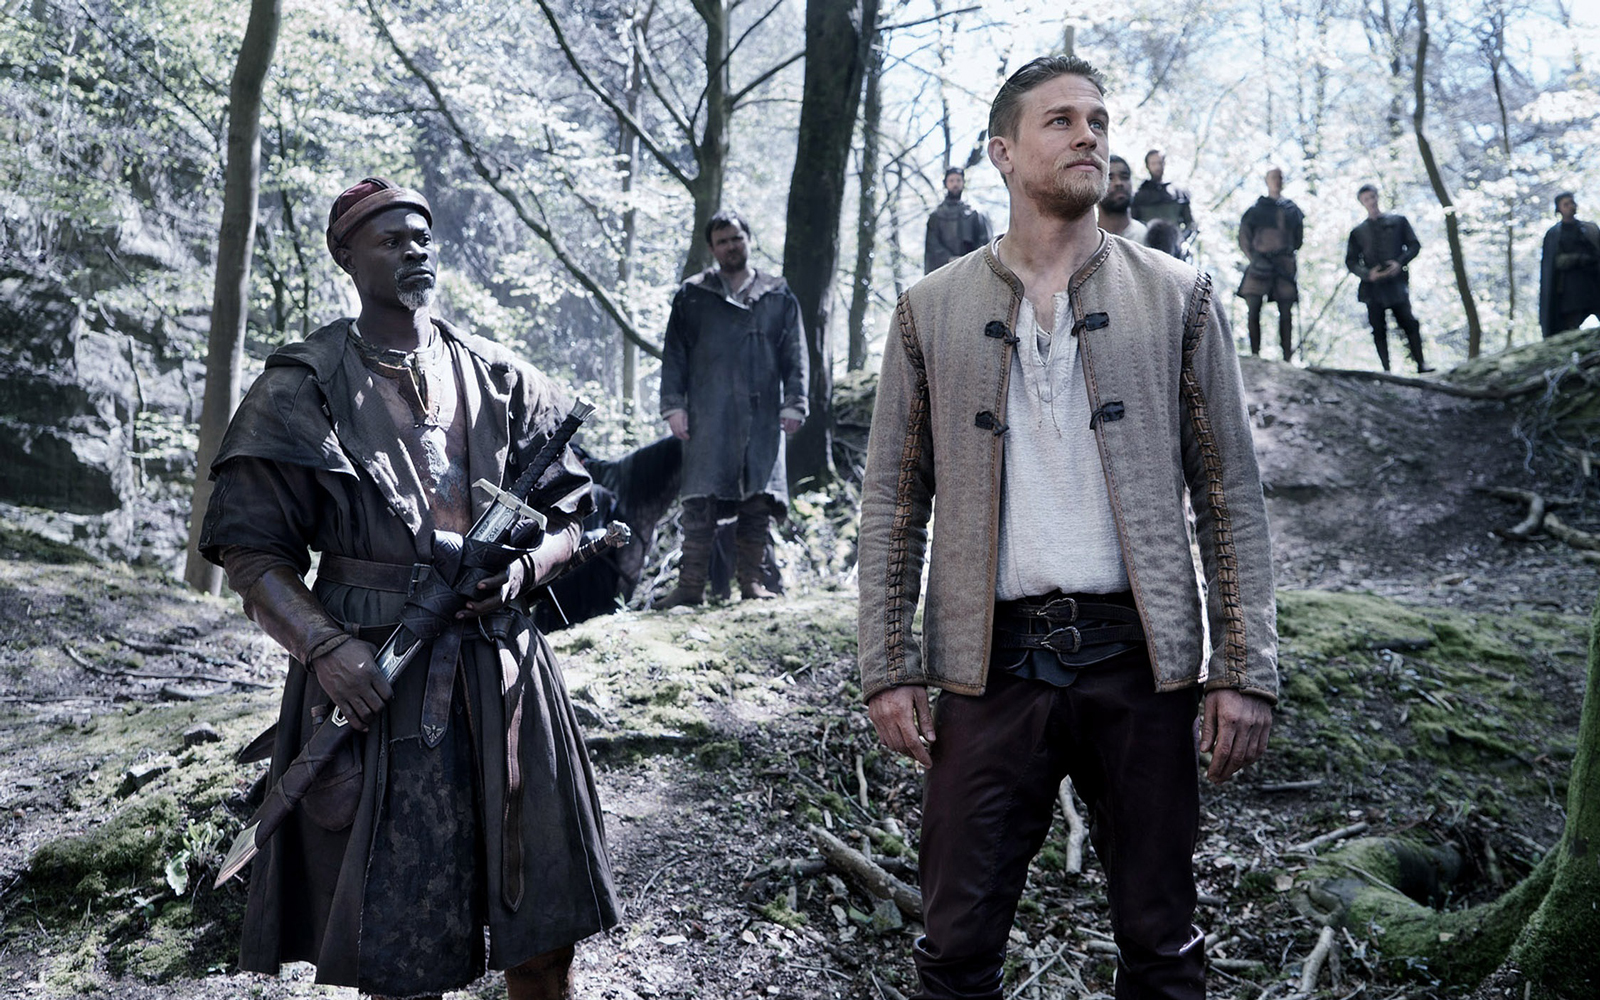 """""""King Arthur: Legend of the Sword"""" stars Charlie Hunnam, Jude Law, Astrid Berges-Frisbey, and Djimon Hounsou."""